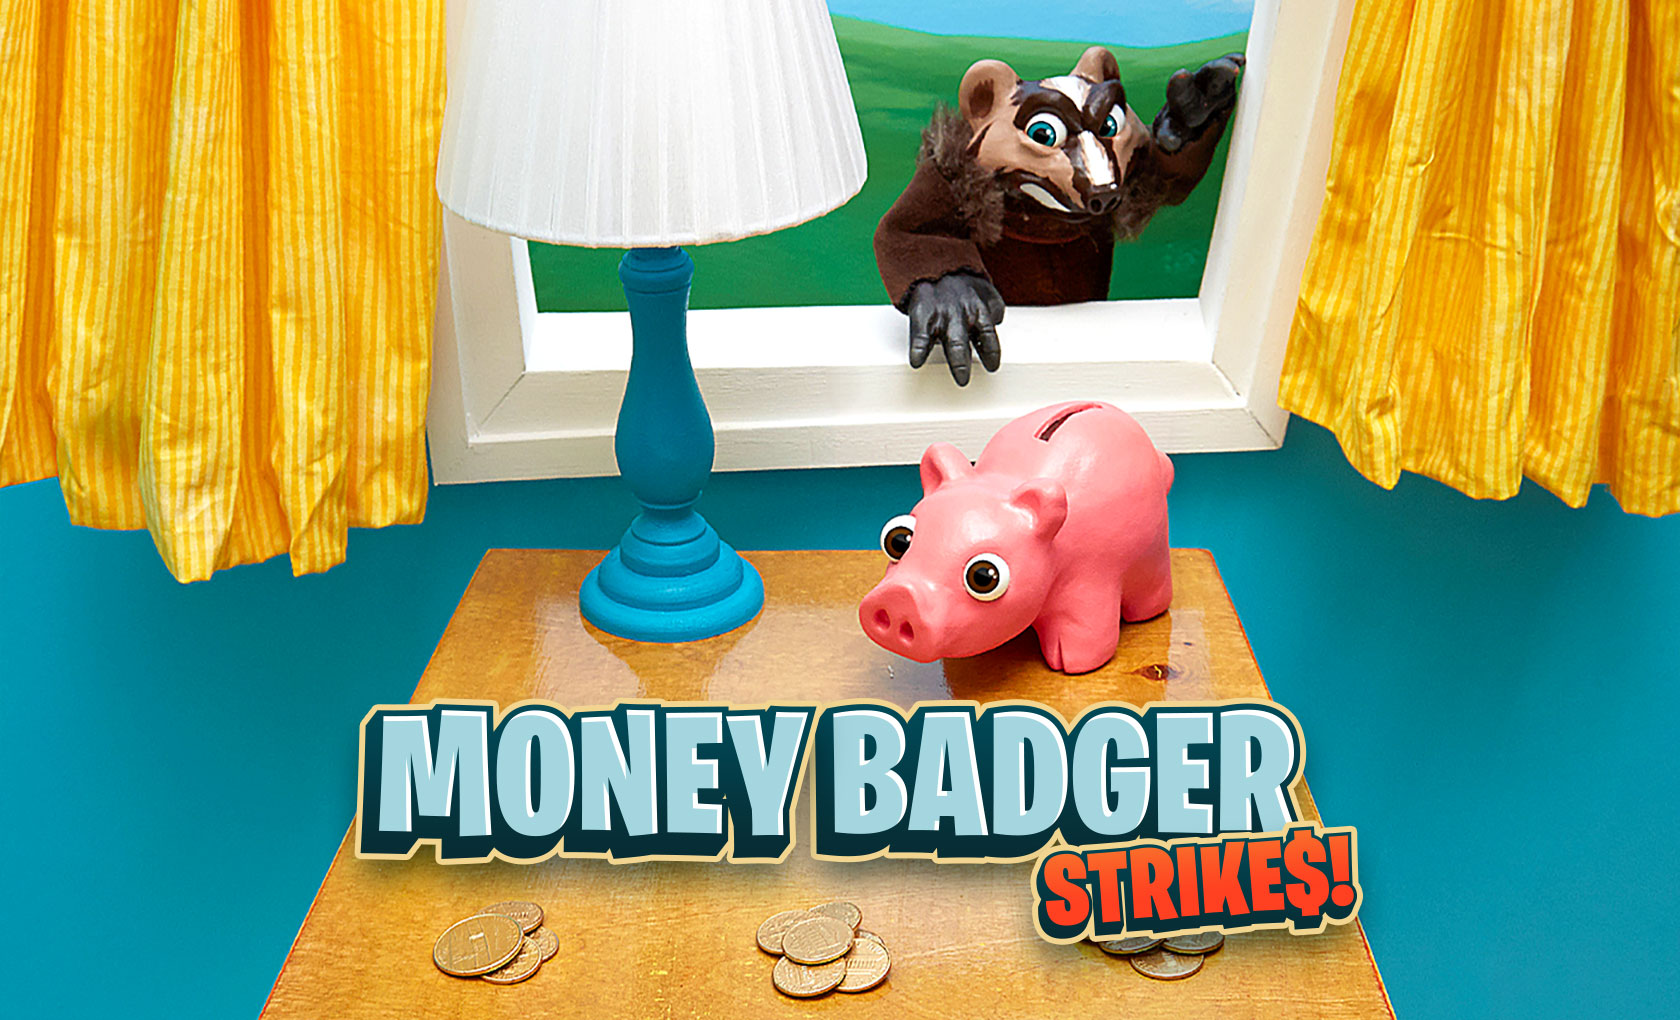 Money Badger Strikes!